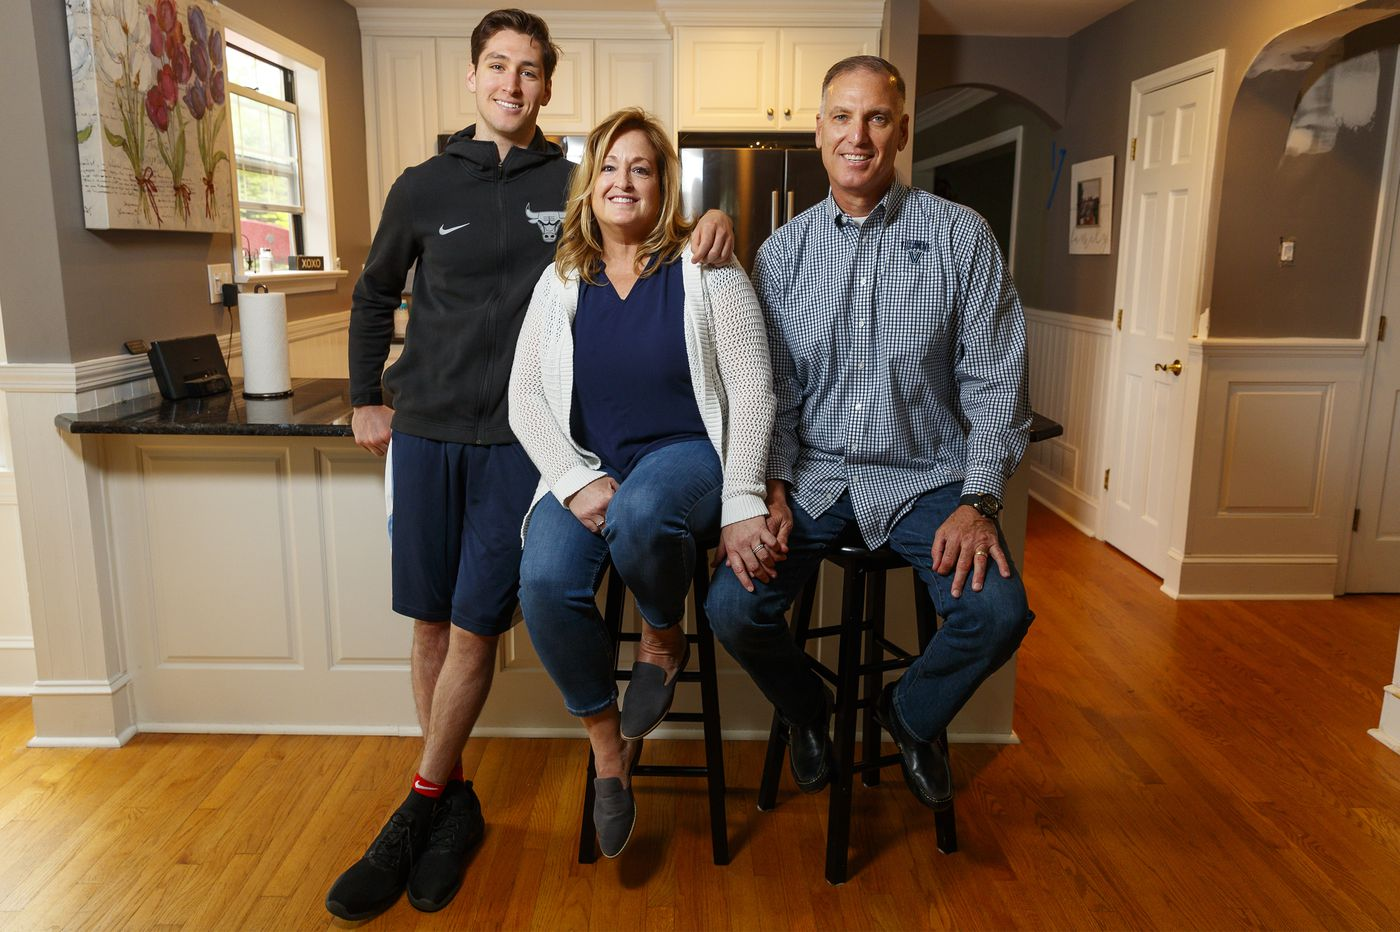 The Arcidiacono clan has become 'Villanova royalty' and one of Philly basketball's first families